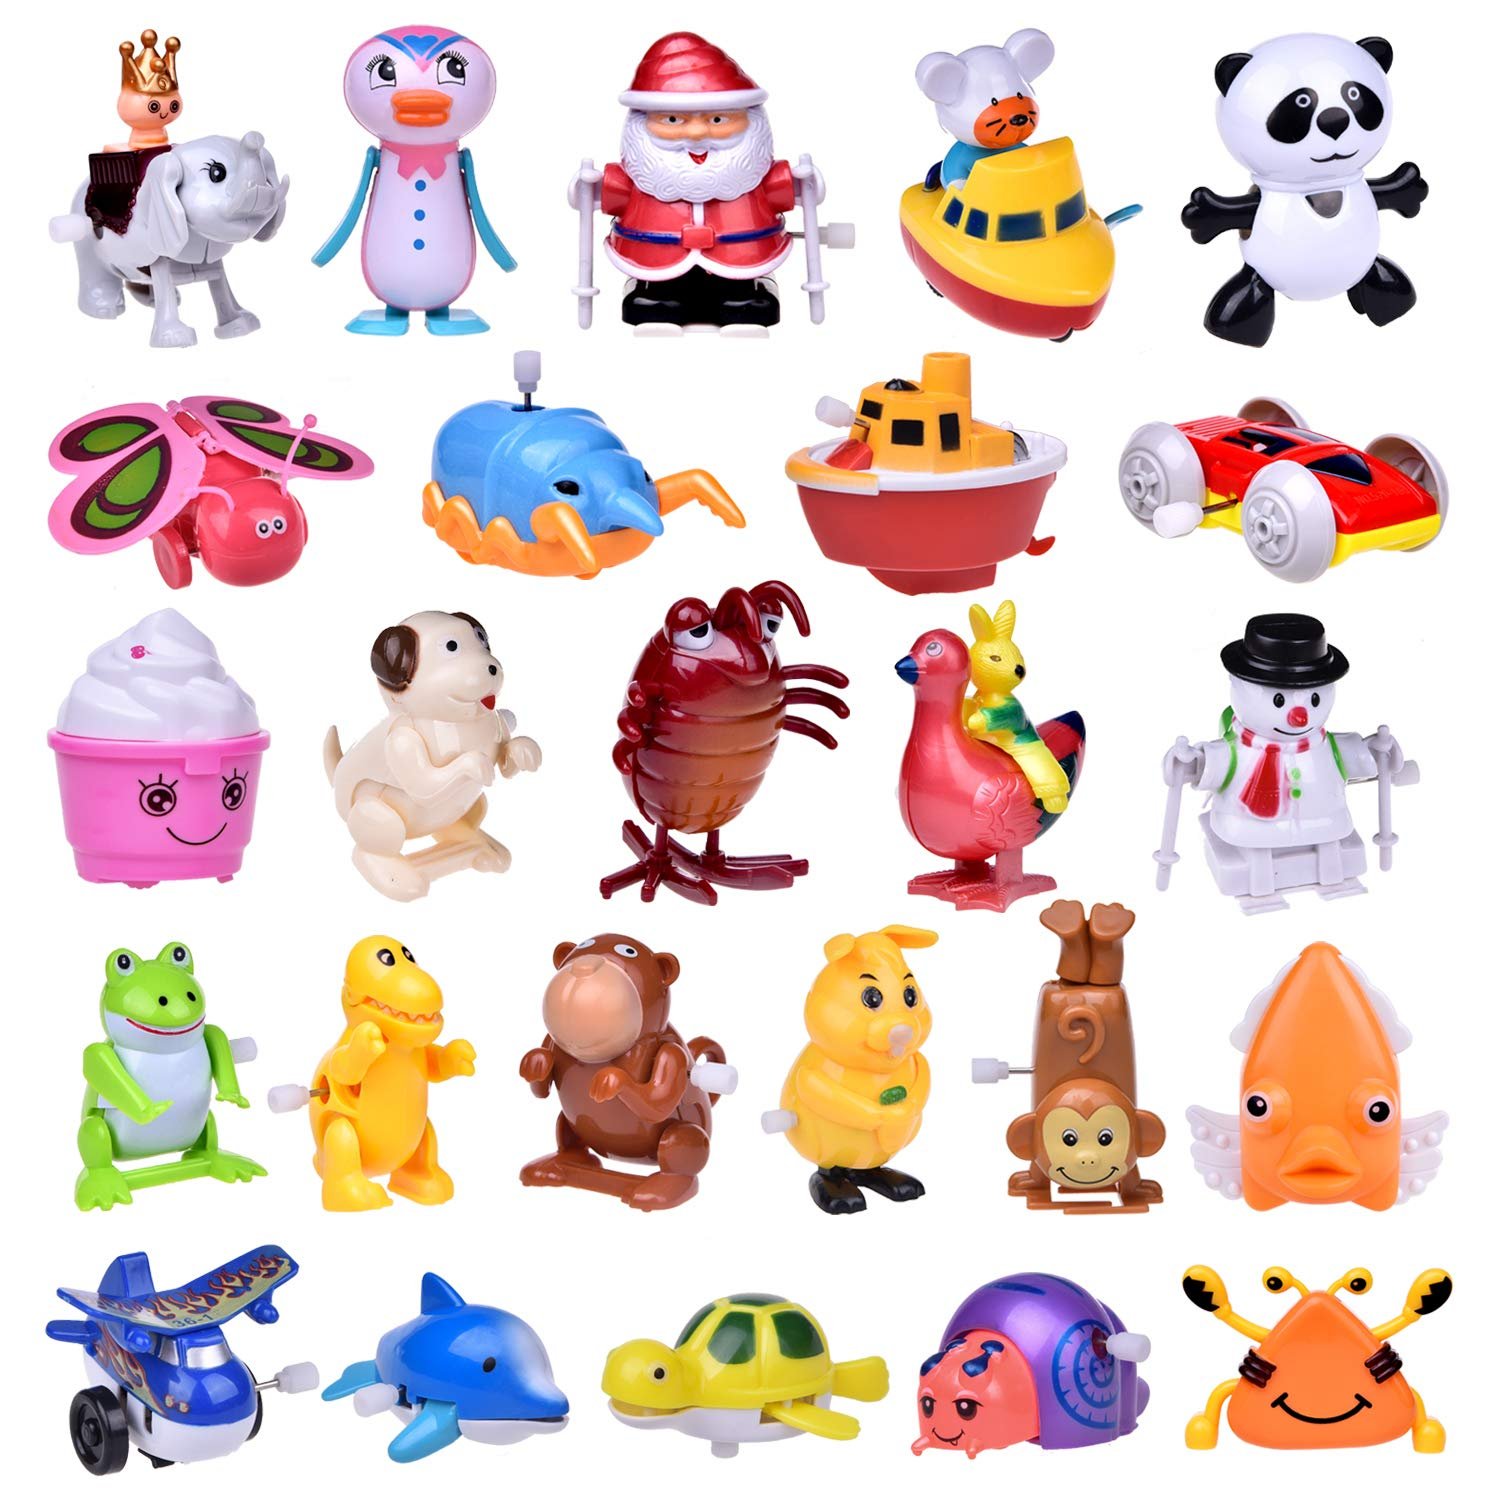 Wind Up Toys 25 PCs Assorted Animal Toys for Kids Party Favor, Easter Egg Fillers, Goodie Bag, Kids Prizes (More Than 2 Dozen)